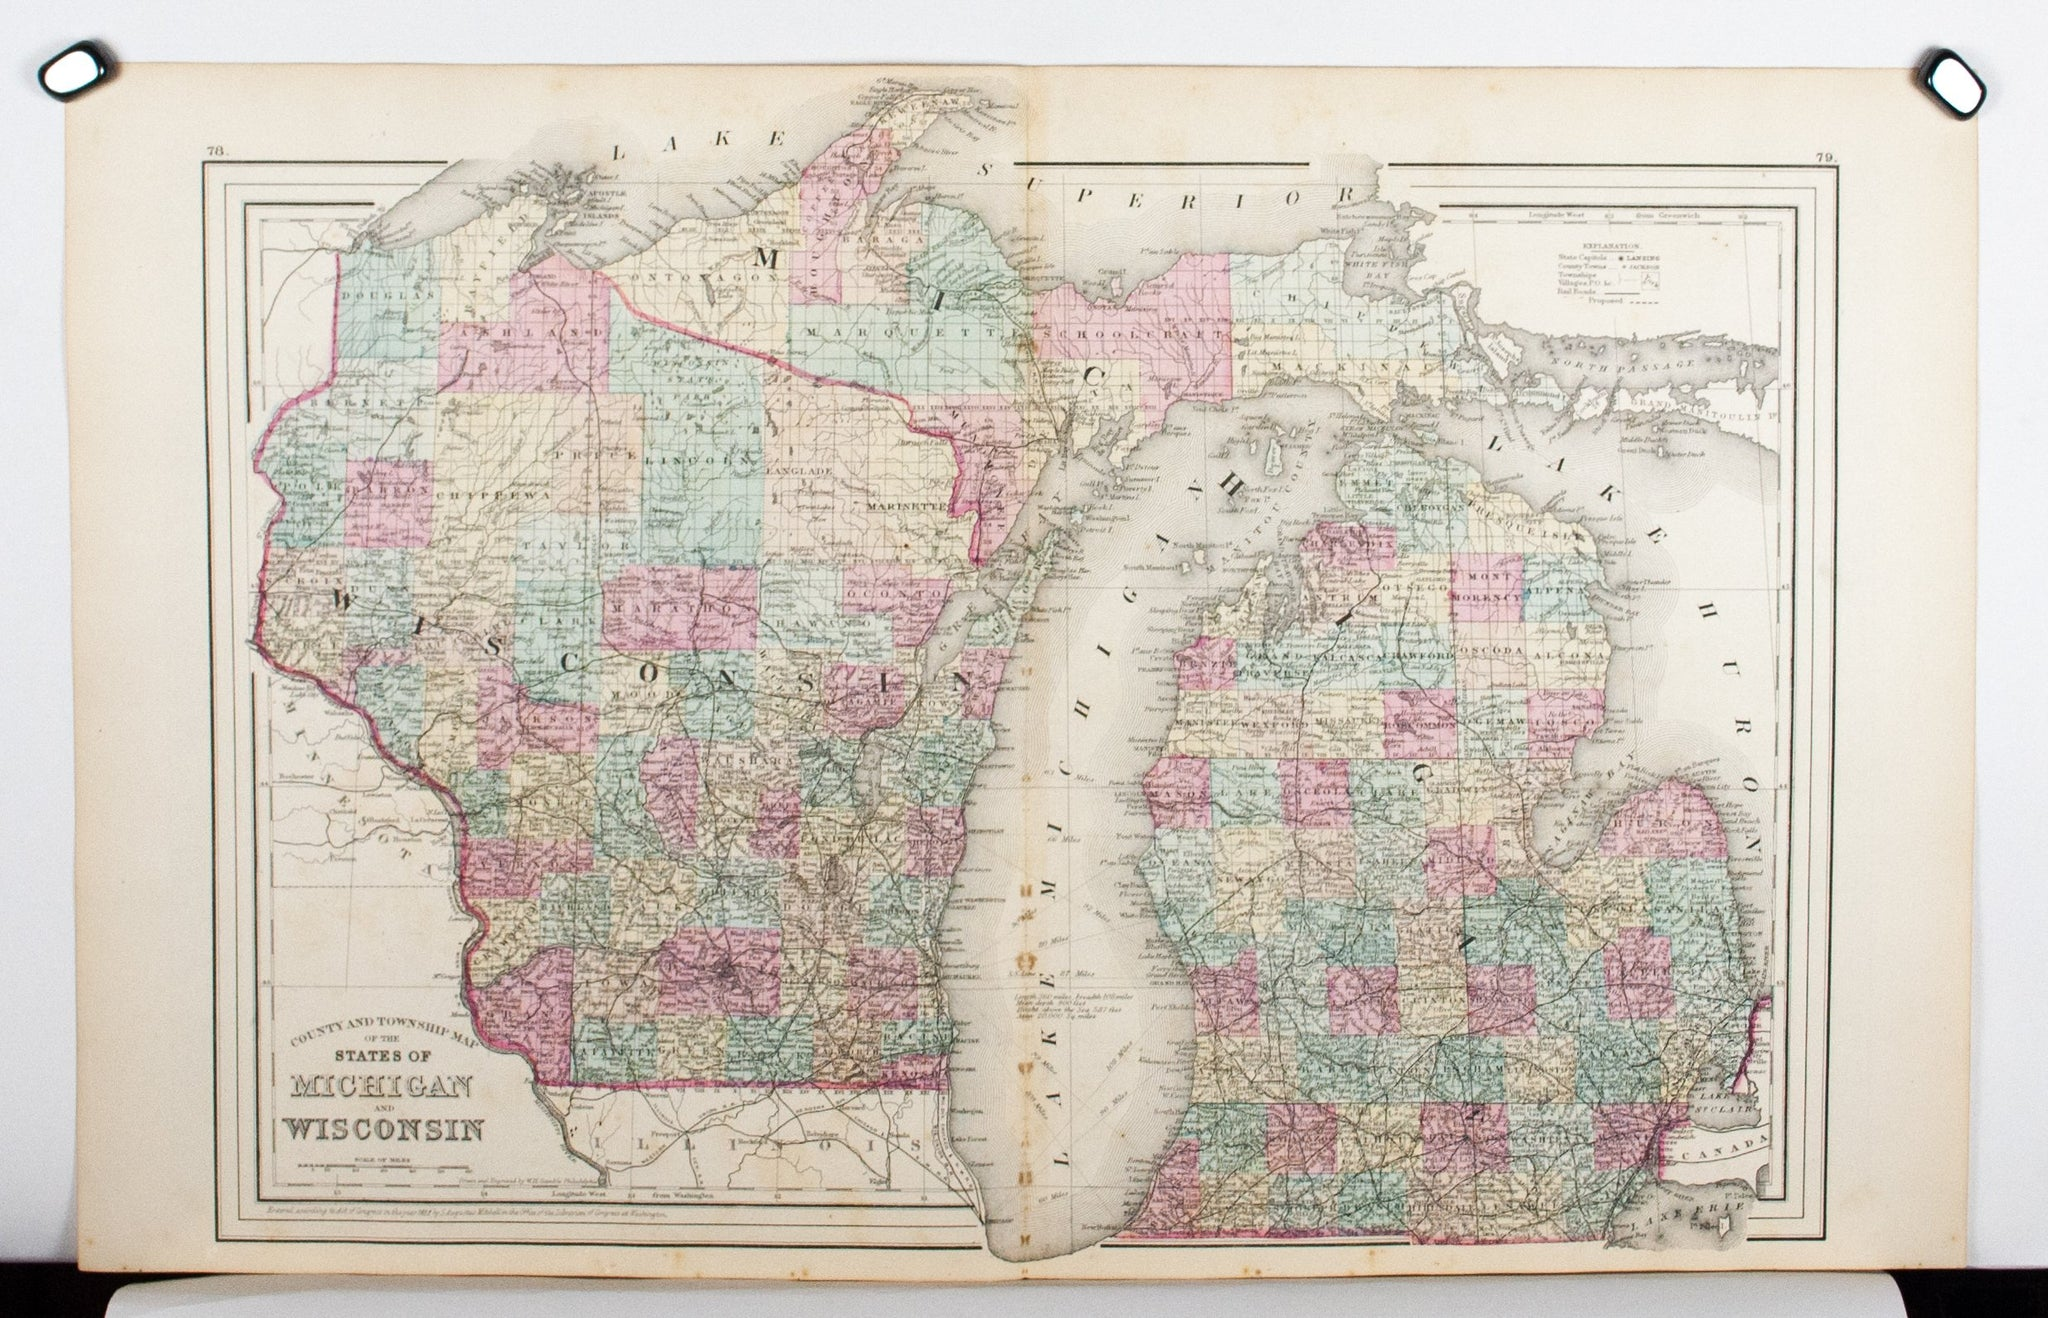 Michigan And Wisconsin Map.1881 County Township Map Of The States Of Michigan And Wisconsin